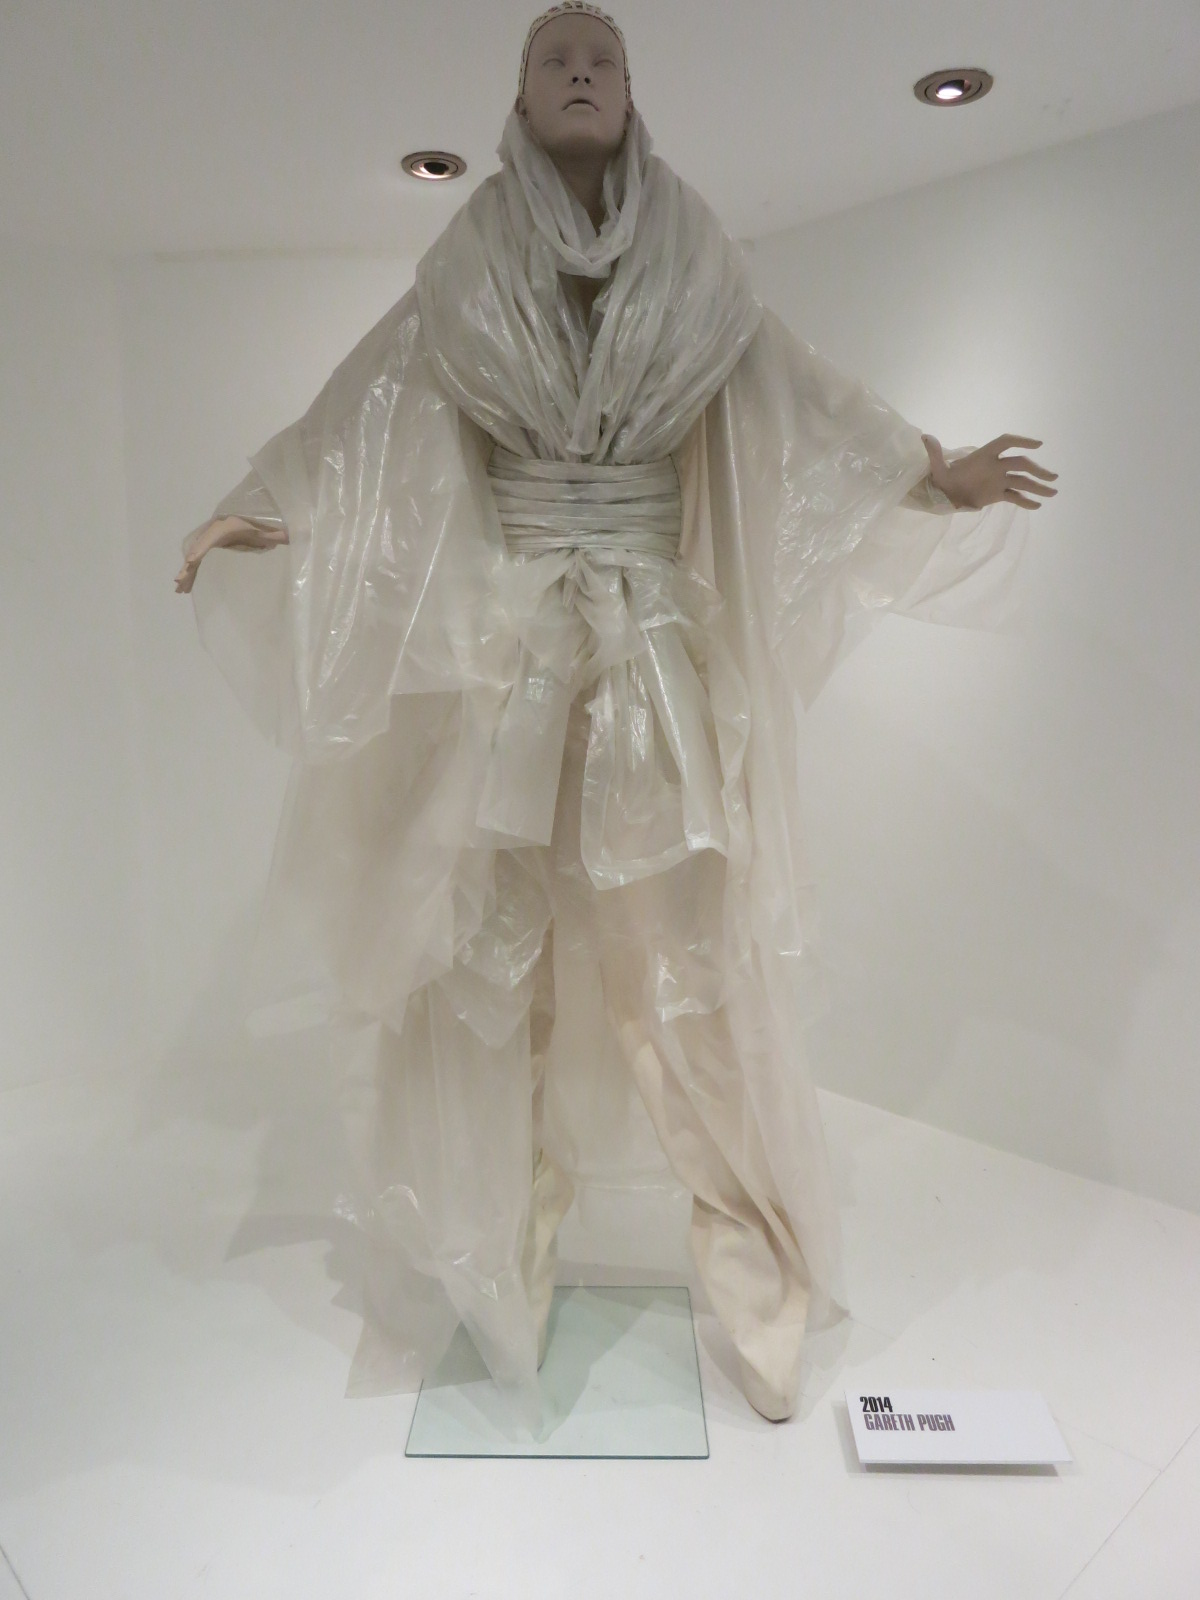 'Dress of the Year' Bath Fashion Museum - Gareth Pugh's plastic ensemble was Katie Grand's (editor-in-chief of LOVE' magazine) choice for 2014.